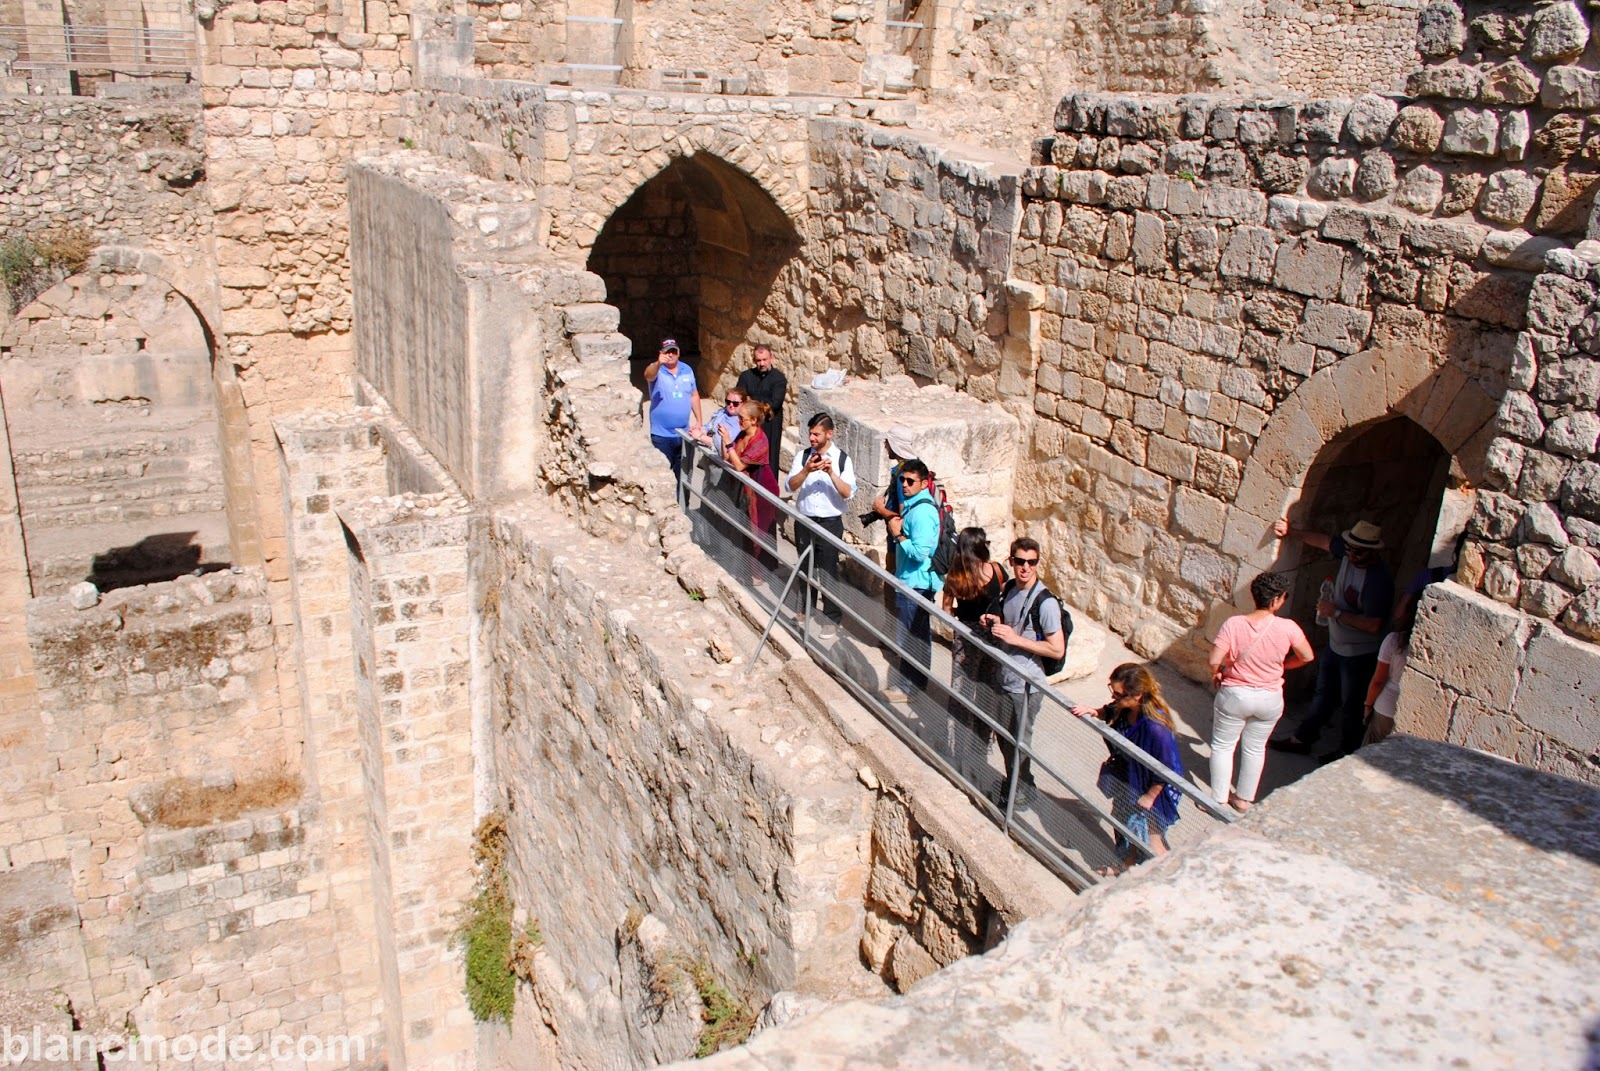 pool of bethesda where Jesus healed the paralytic